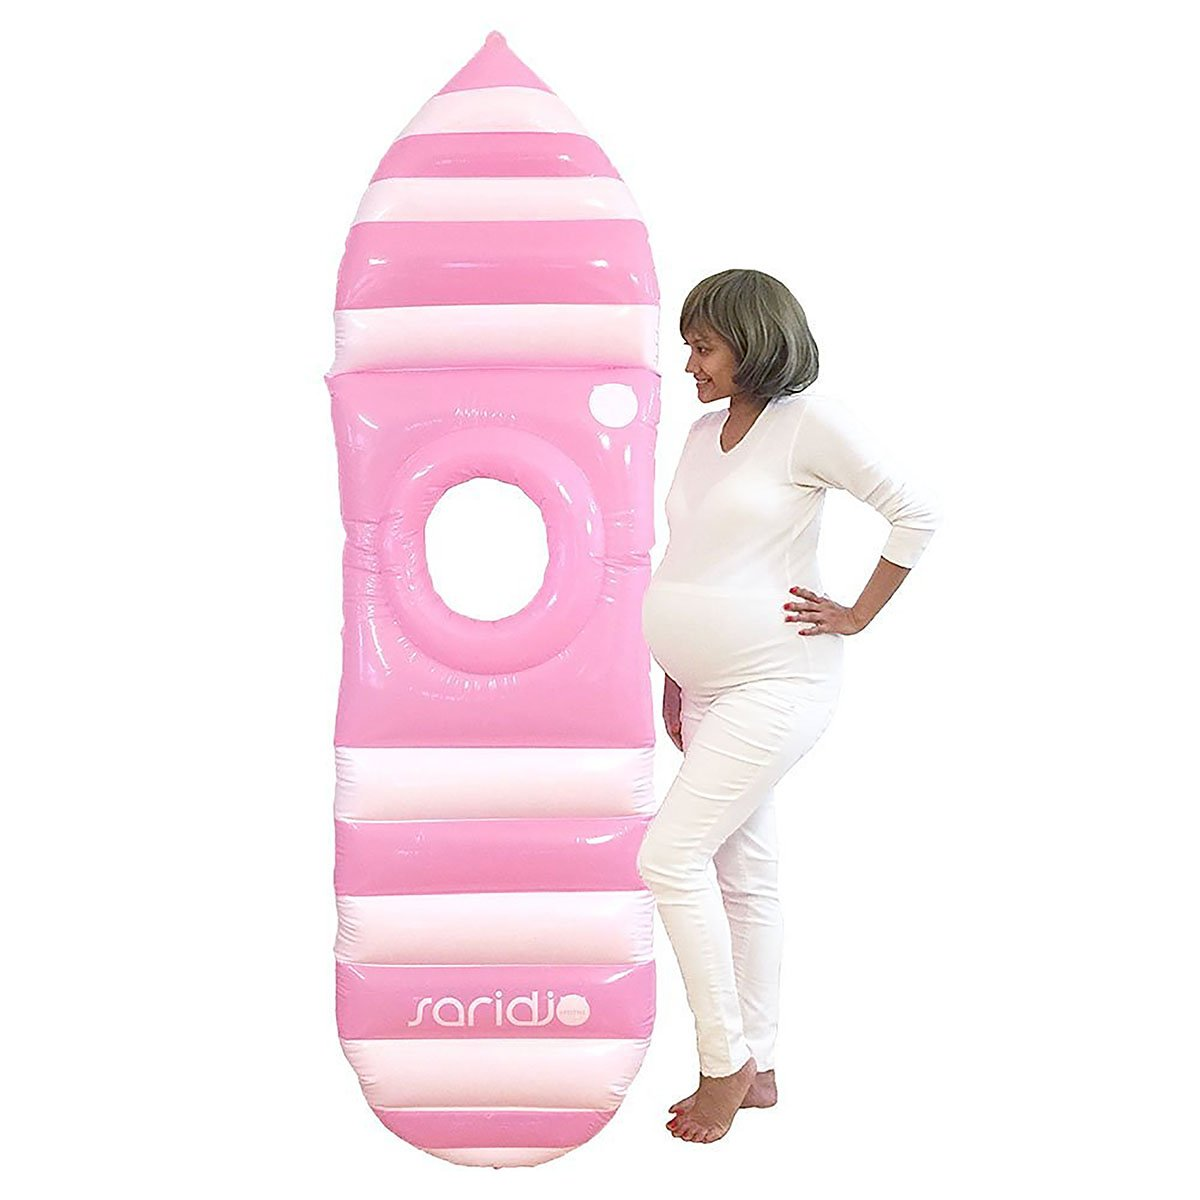 Inflatable Water Slides While Pregnant: Saridjo Maternity Air Mattress / Bed Maternity Pillow